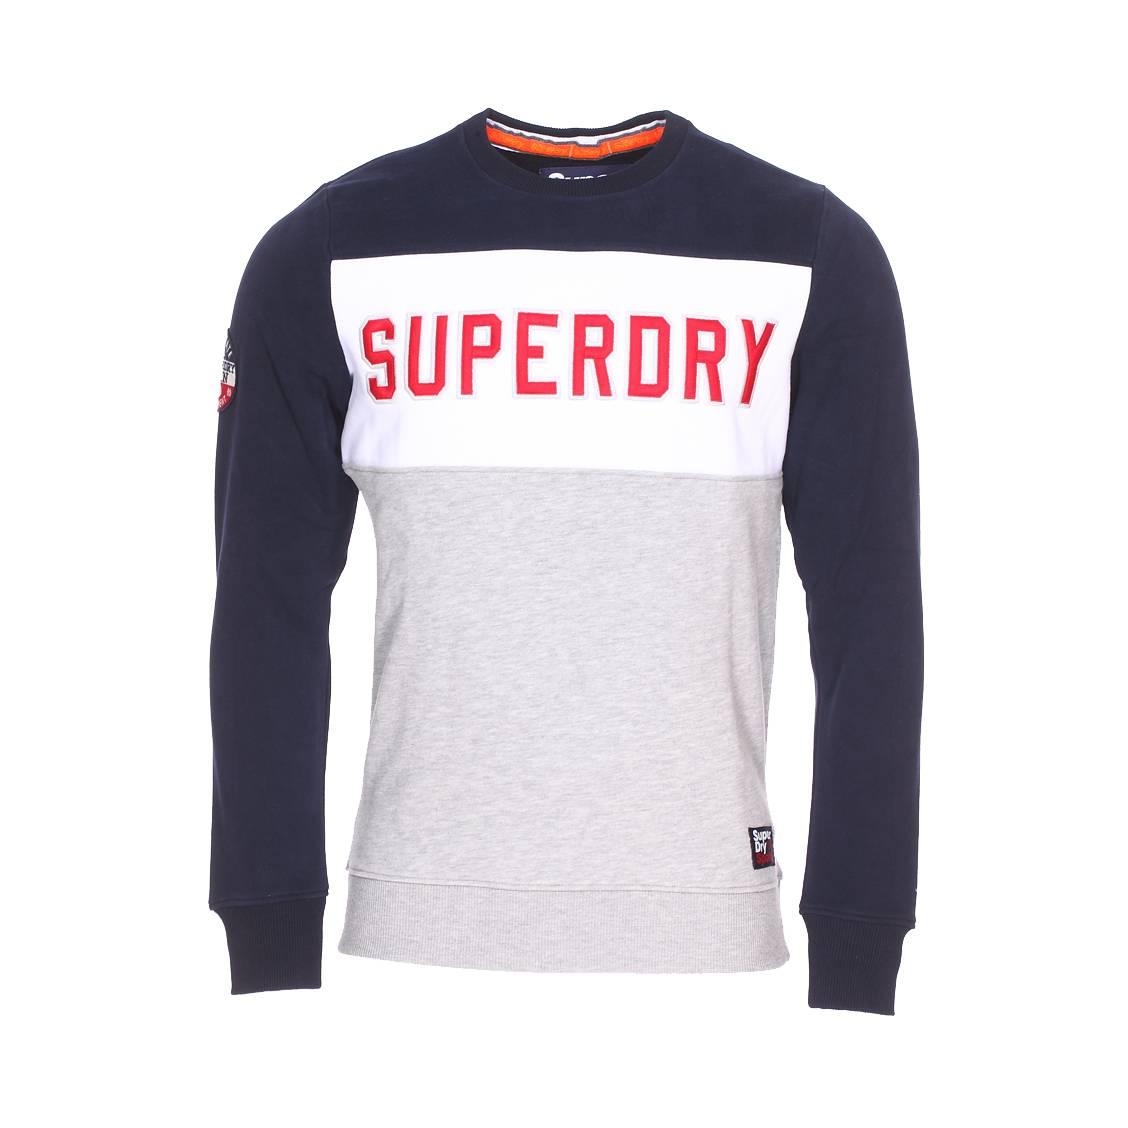 Coton Colour Col Superdry Molletonné Block Academy Sweat Rond En xHf0q4